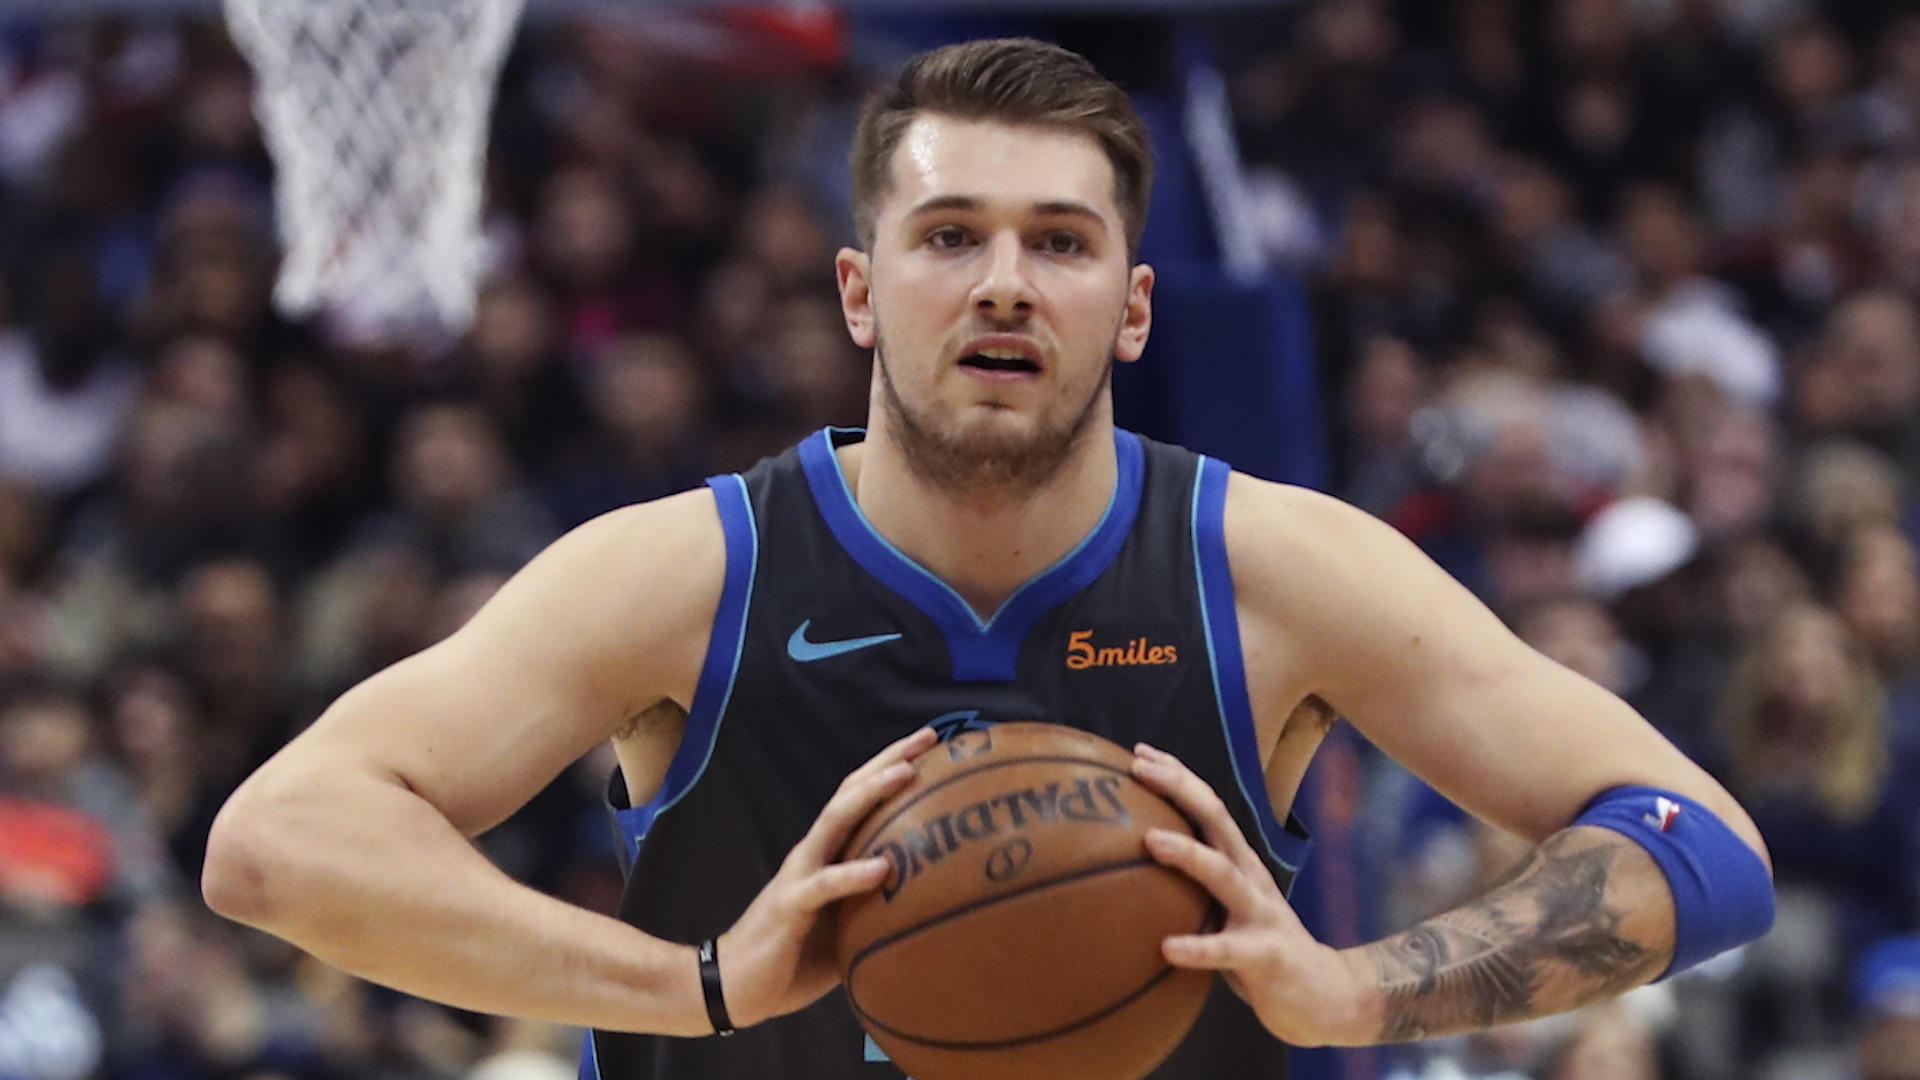 2019 NBA All-Star Weekend: Ranking every player in the Rising Stars game, from Luka Doncic to Rodions Kurucs